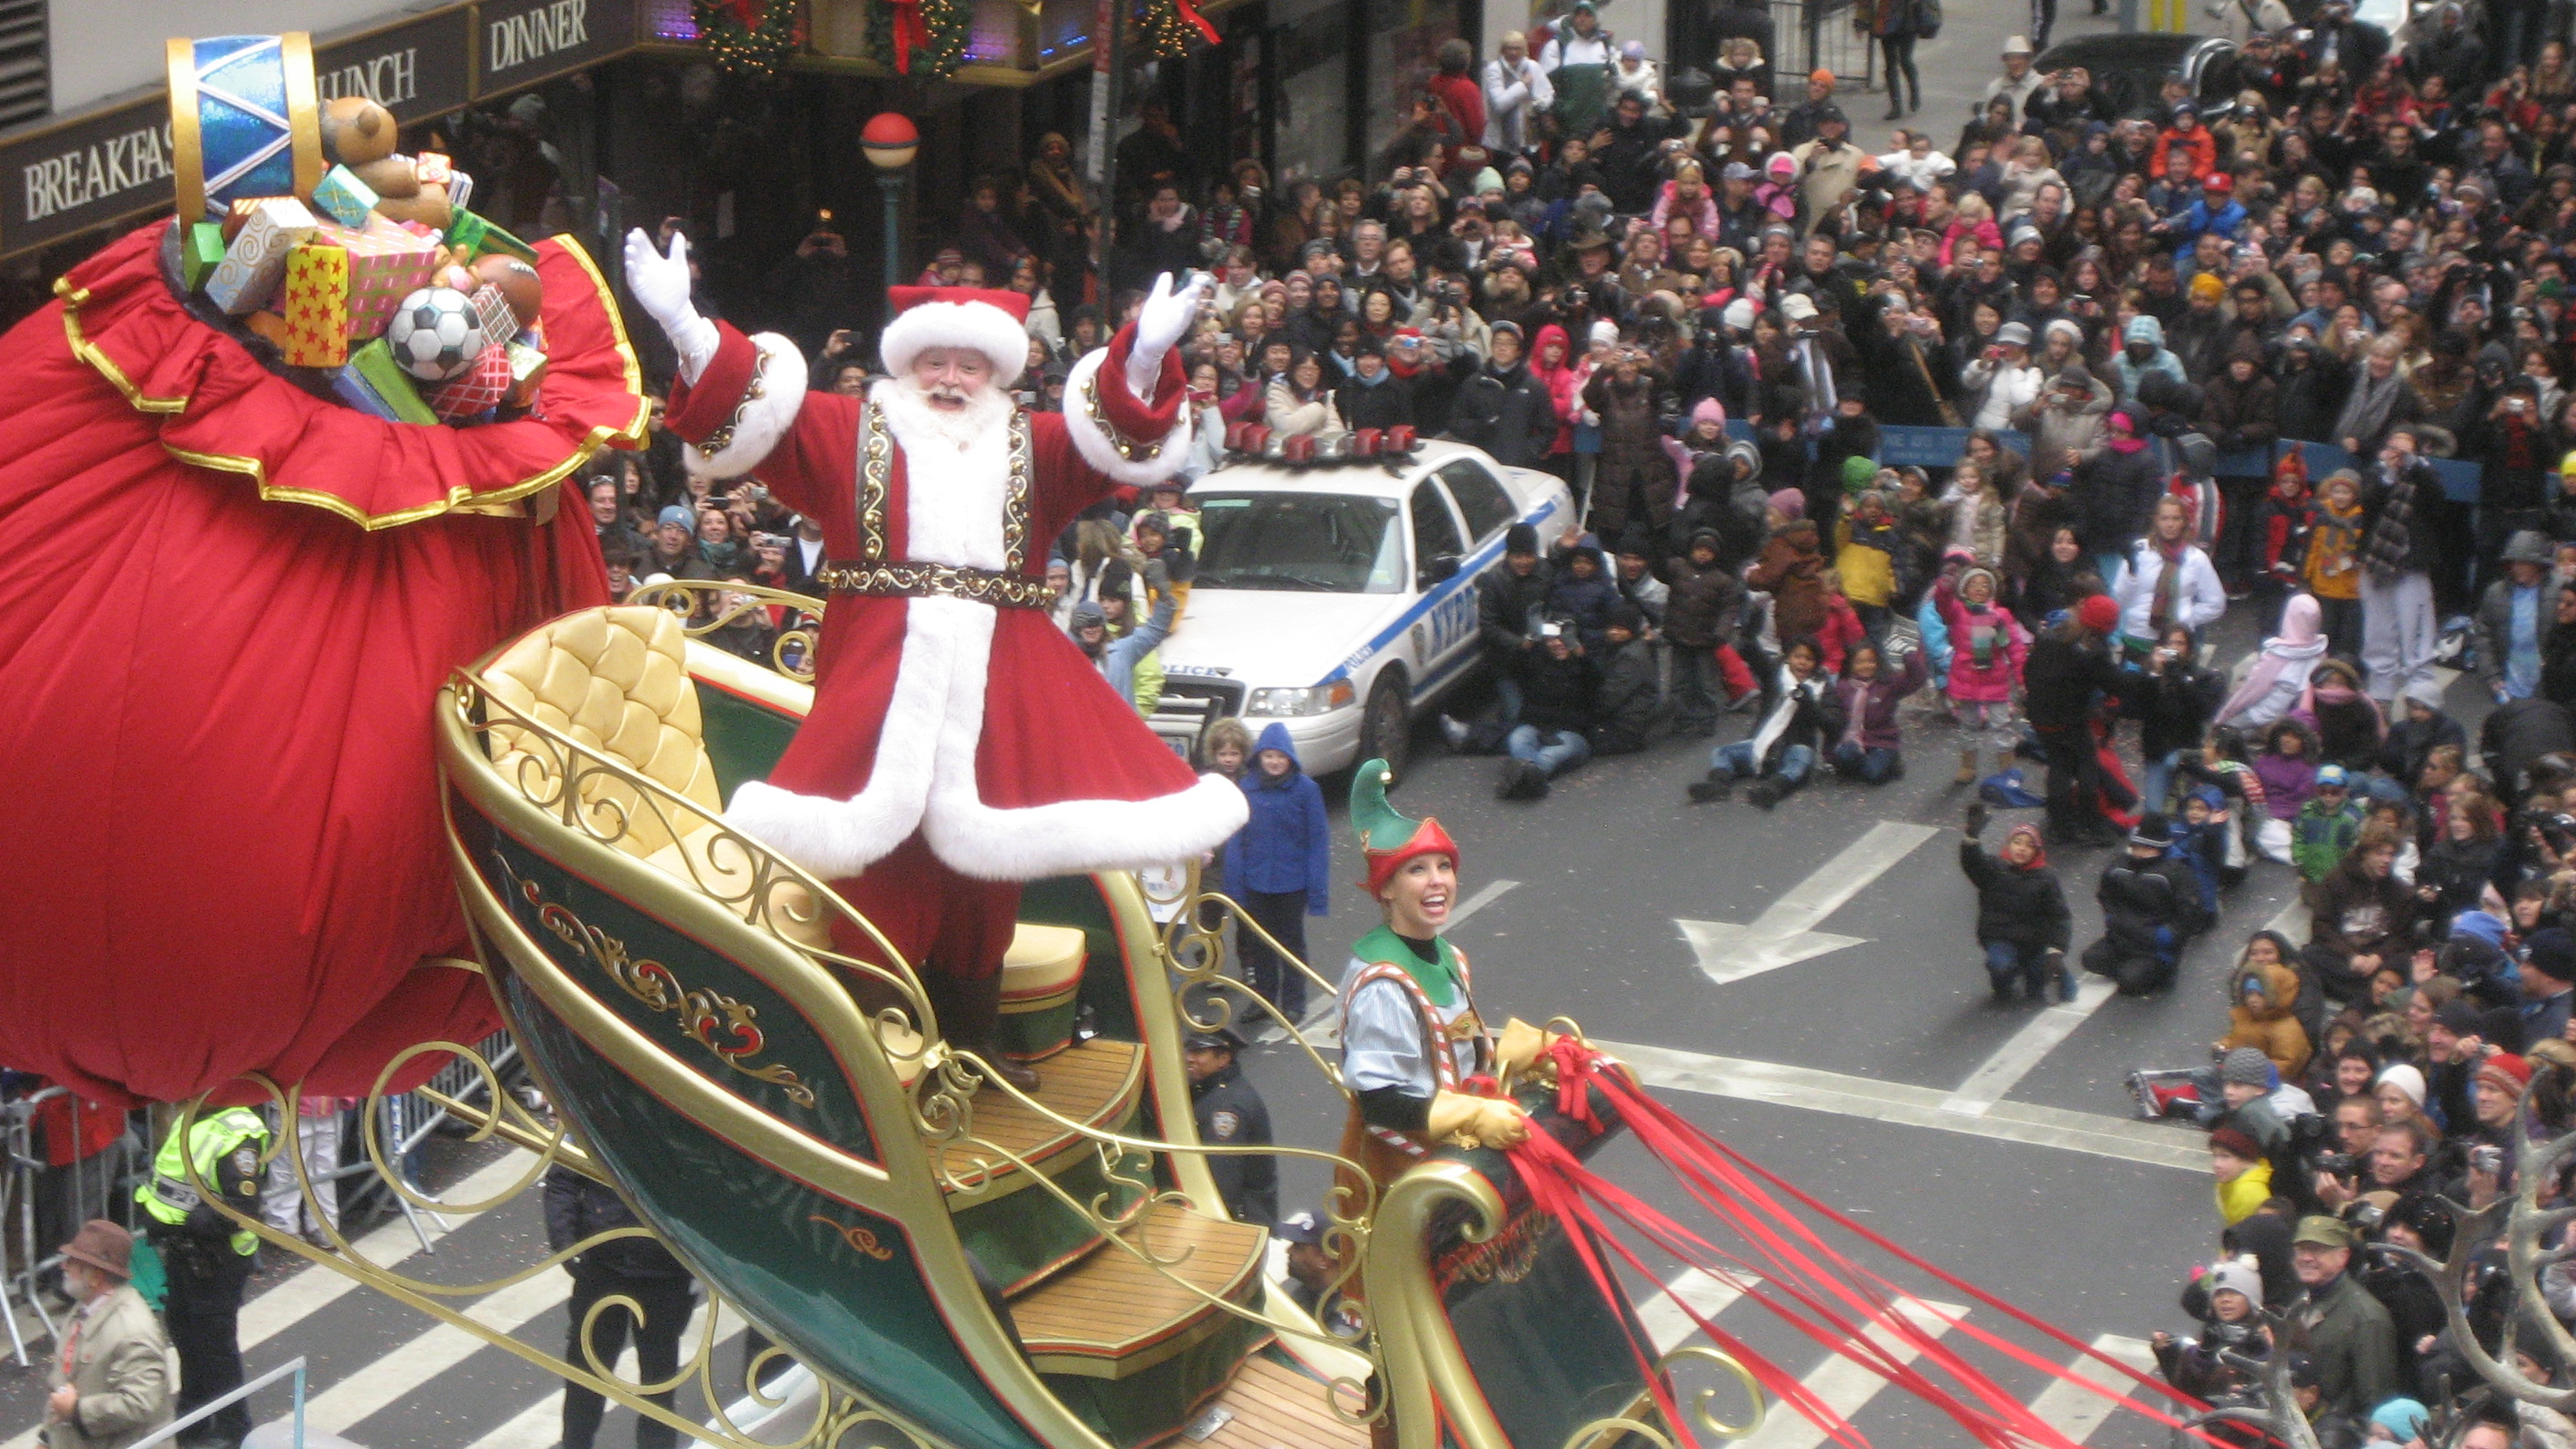 Santa Claus @ Macys Thanksgiving Parade